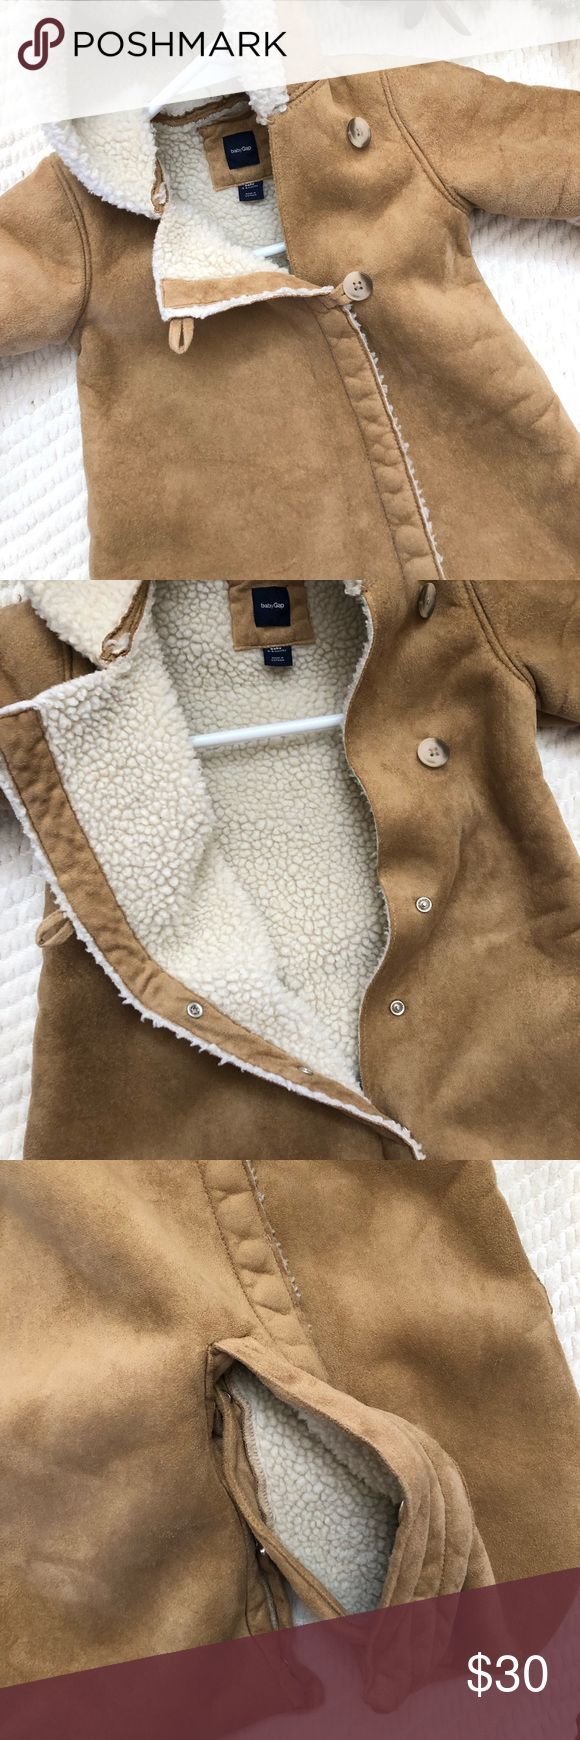 Baby Gap baby bunting snowsuit, stroller bag in 2020